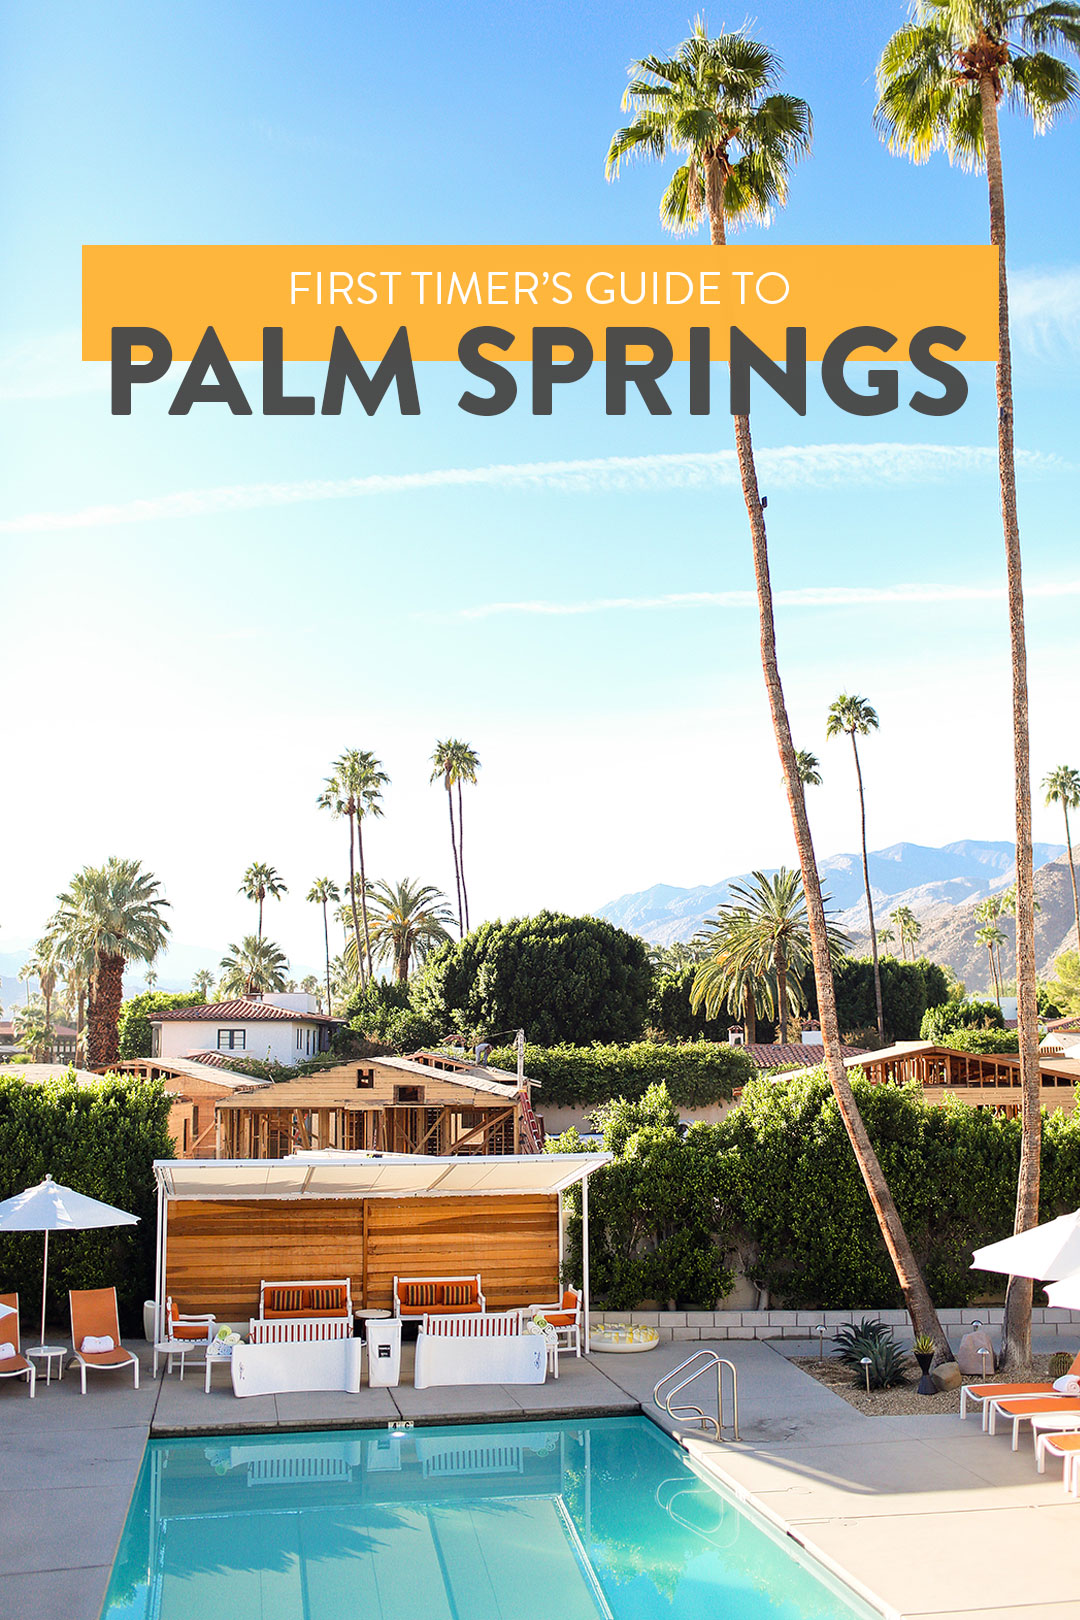 15 Unforgettable Things To Do In Palm Springs California